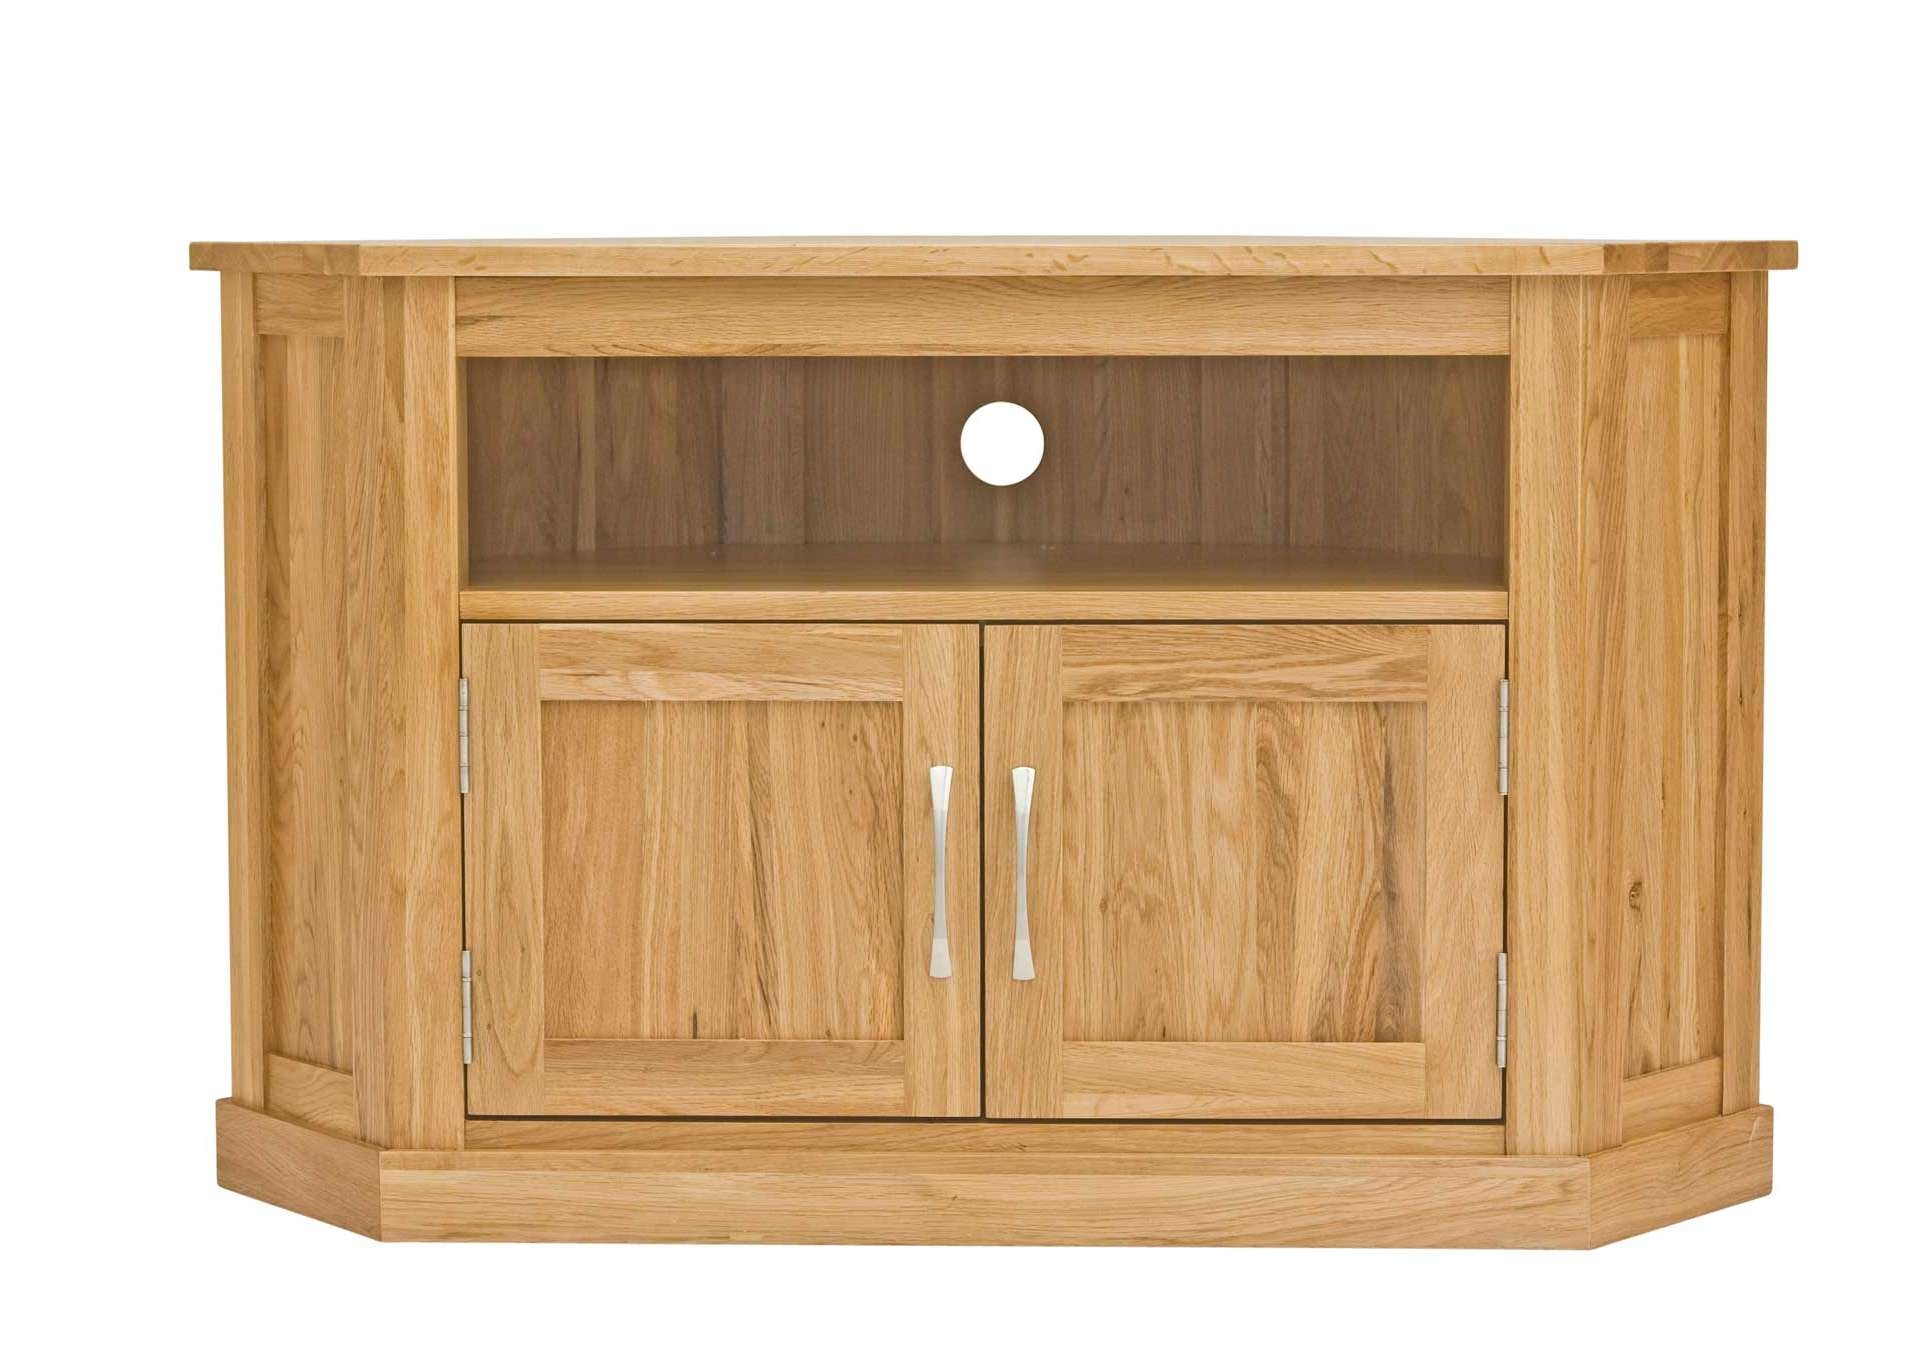 The Best Oak Tv Cabinets With Doors